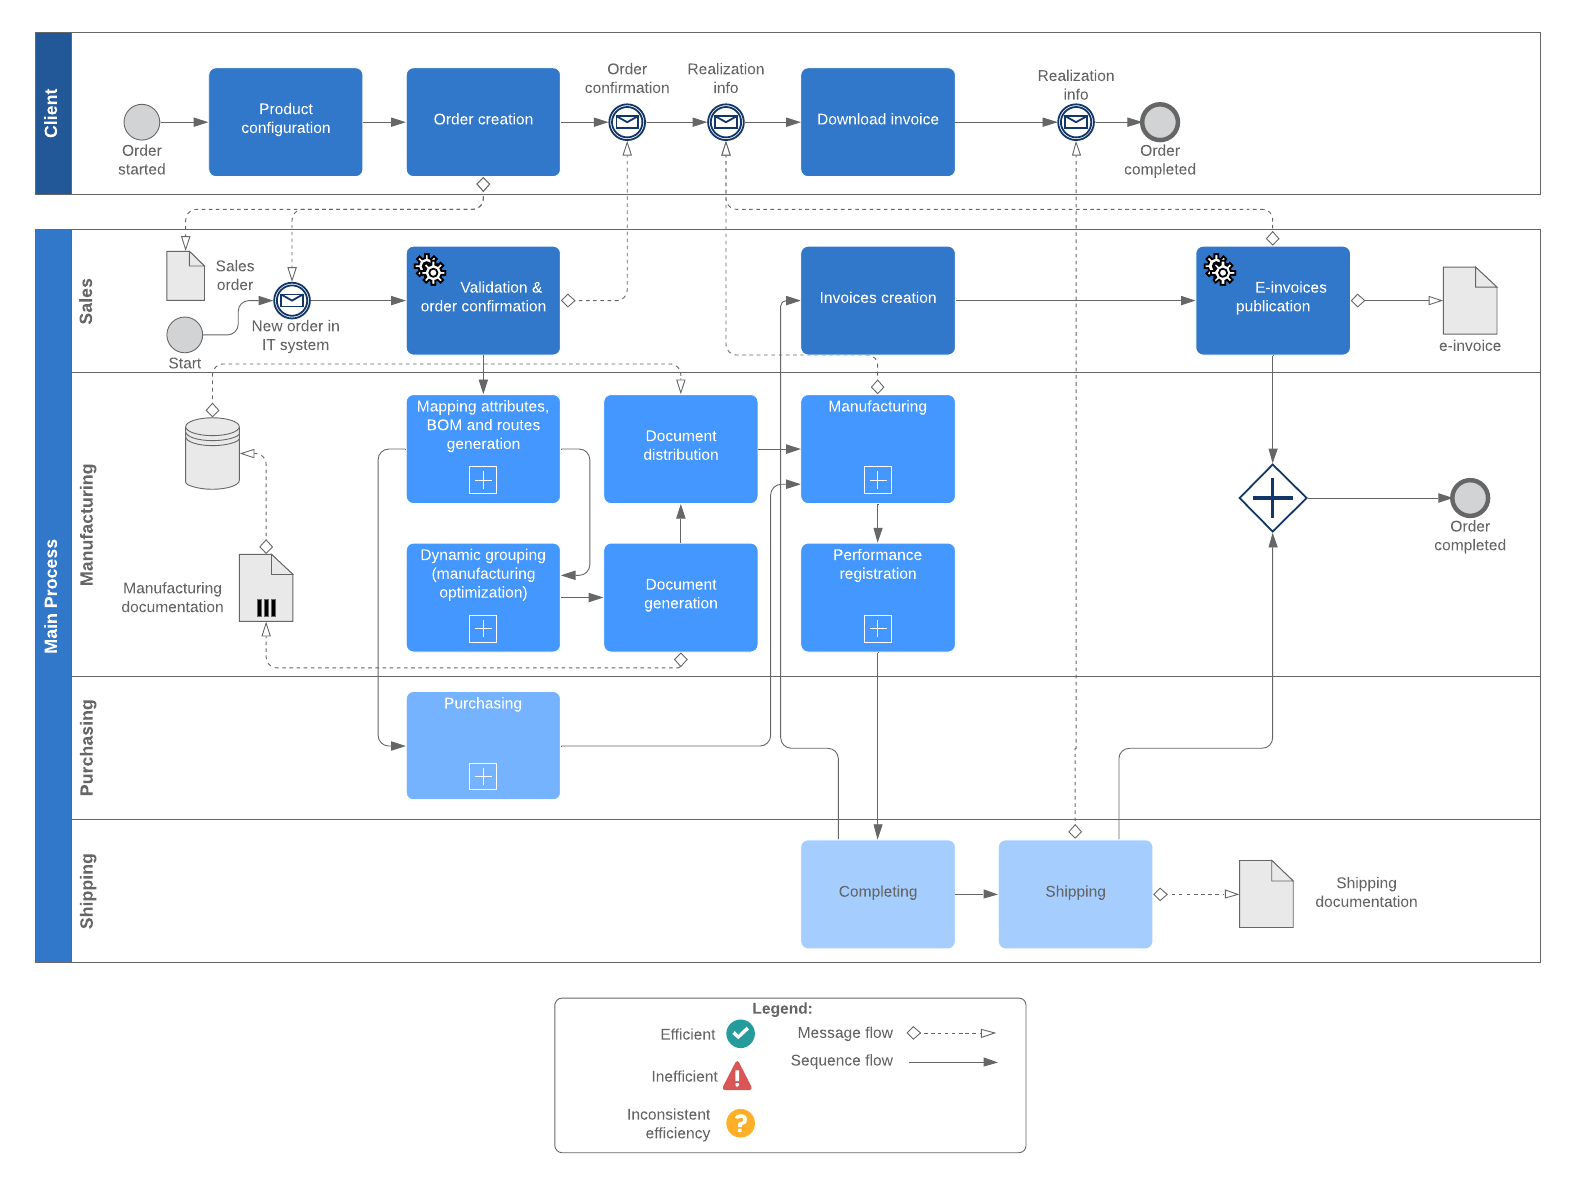 BPMN Collaborative Mfg. Process Example